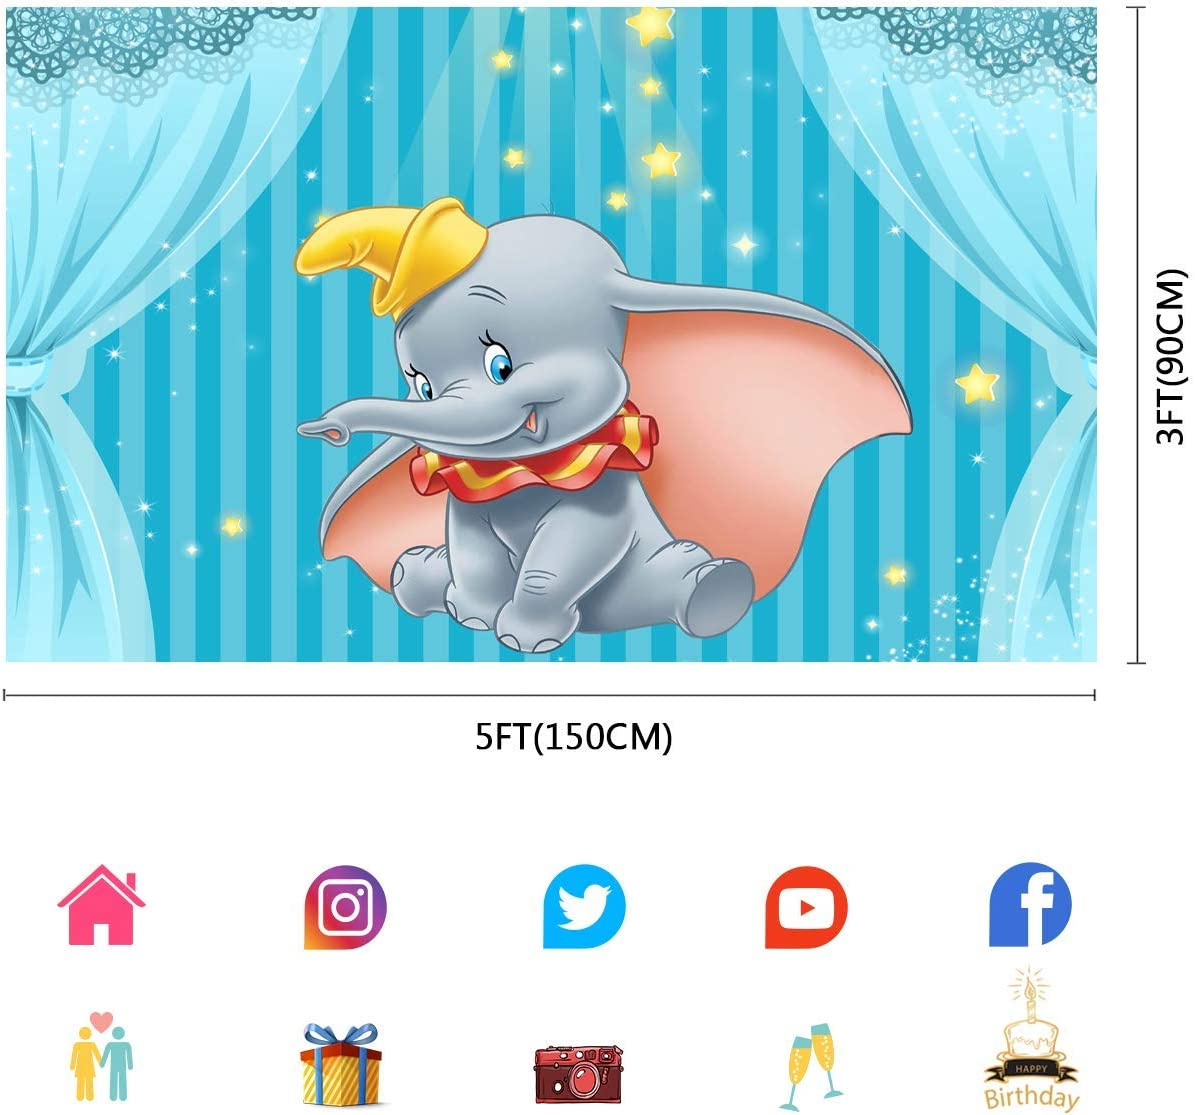 6x4ft Cartoon Dumbo Background Fairy Tale Elephant Baby Birthday Photography Backdrop Baby Shower Cake Table Decor Photo Booth Props LLFU086